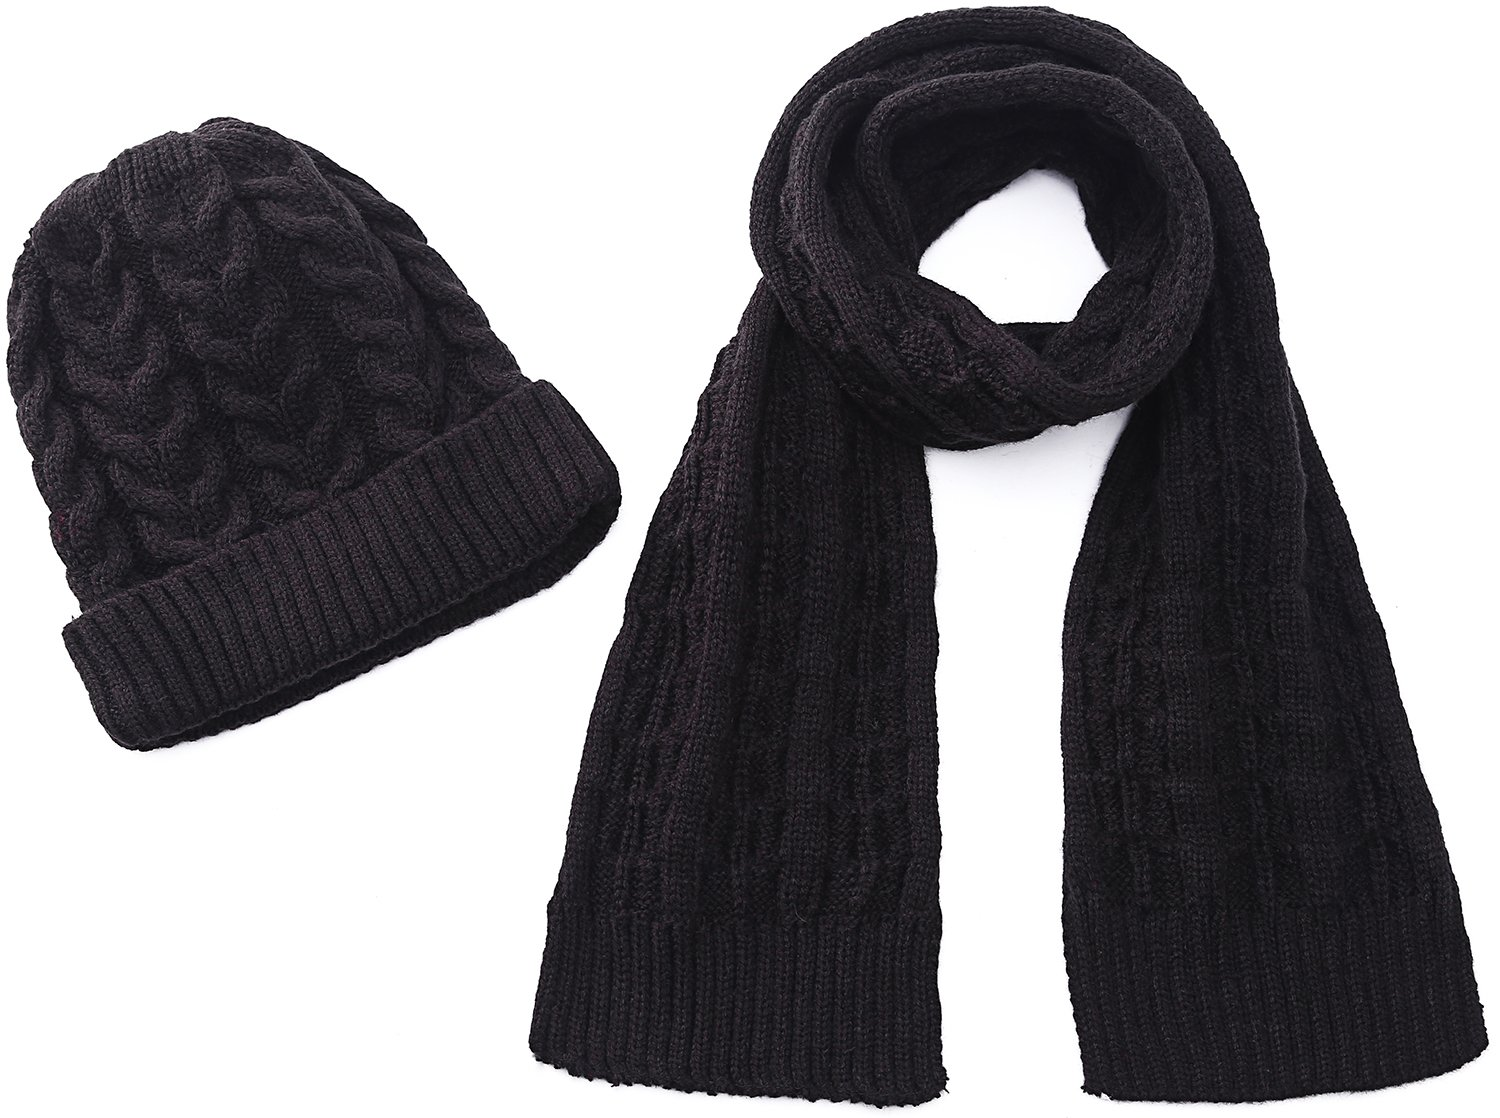 Hat Scarf Sets Thick Winter Scarves for Boys Girls Beanie With Knit Hats Black